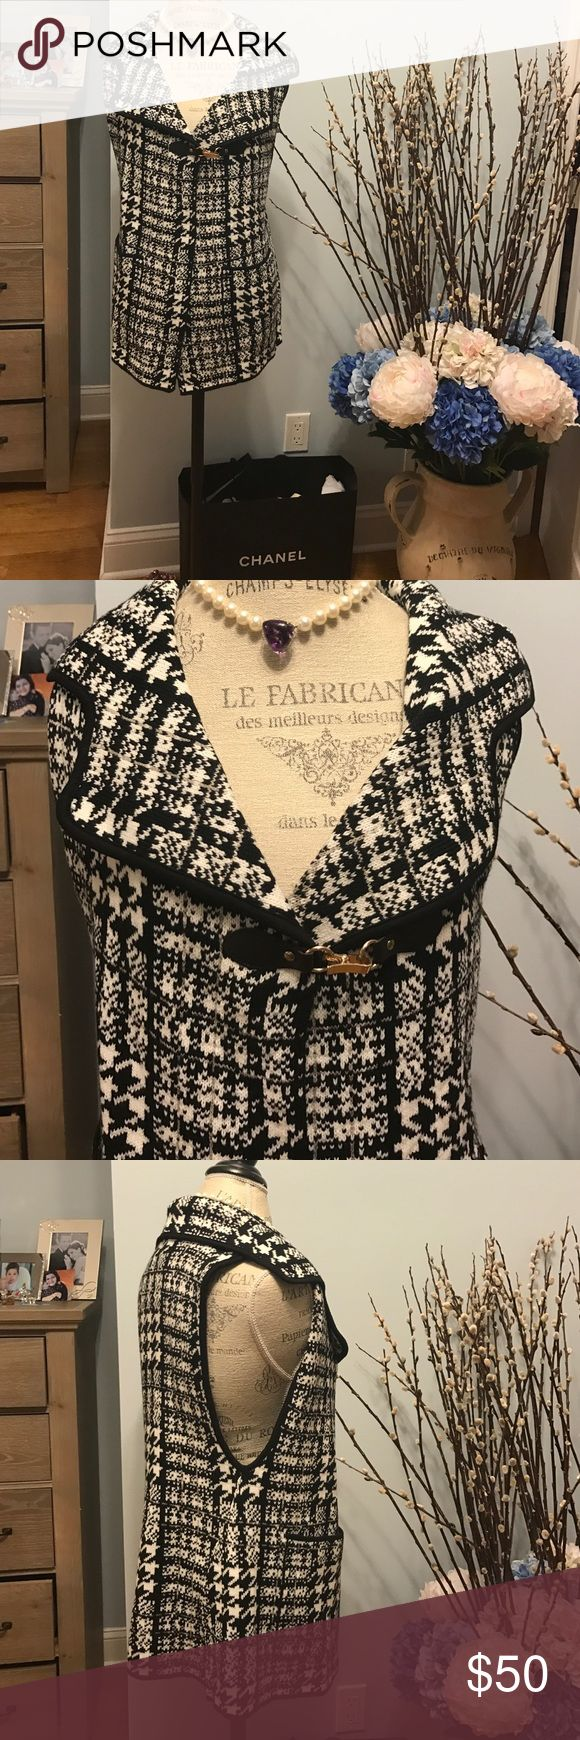 BLACK AND WHITE SWEATER VEST Stunning color block vest. Front pockets. Cute top buckle. Size S/M❤️BRAND NEW sioni Jackets & Coats Vests